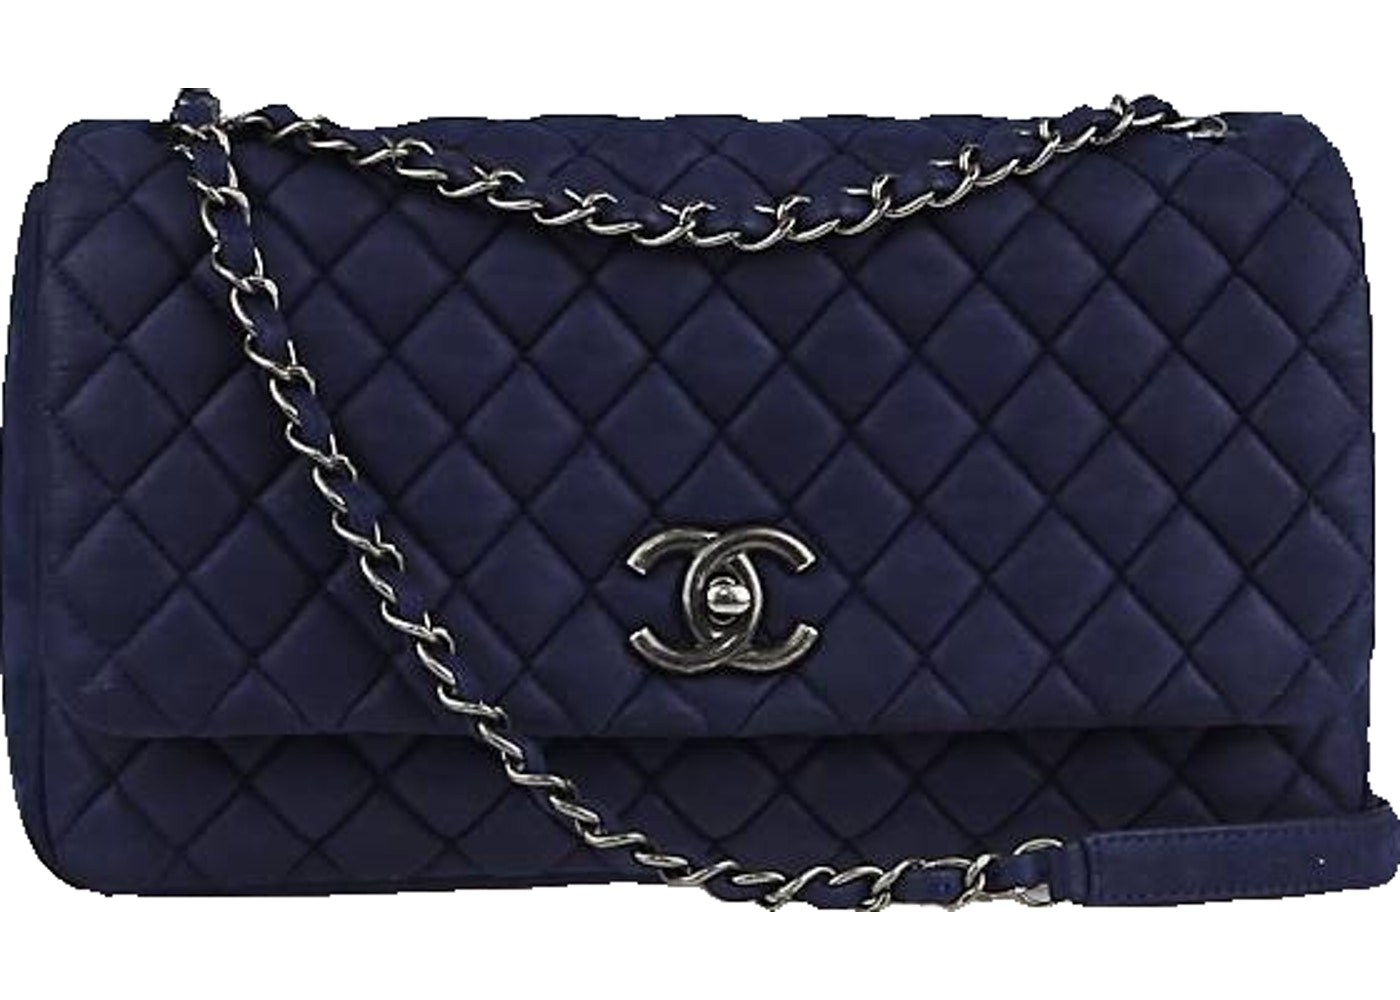 a7c92b8d82e4 Chanel Flap New Bubble Quilted Iridescent Large Navy Blue